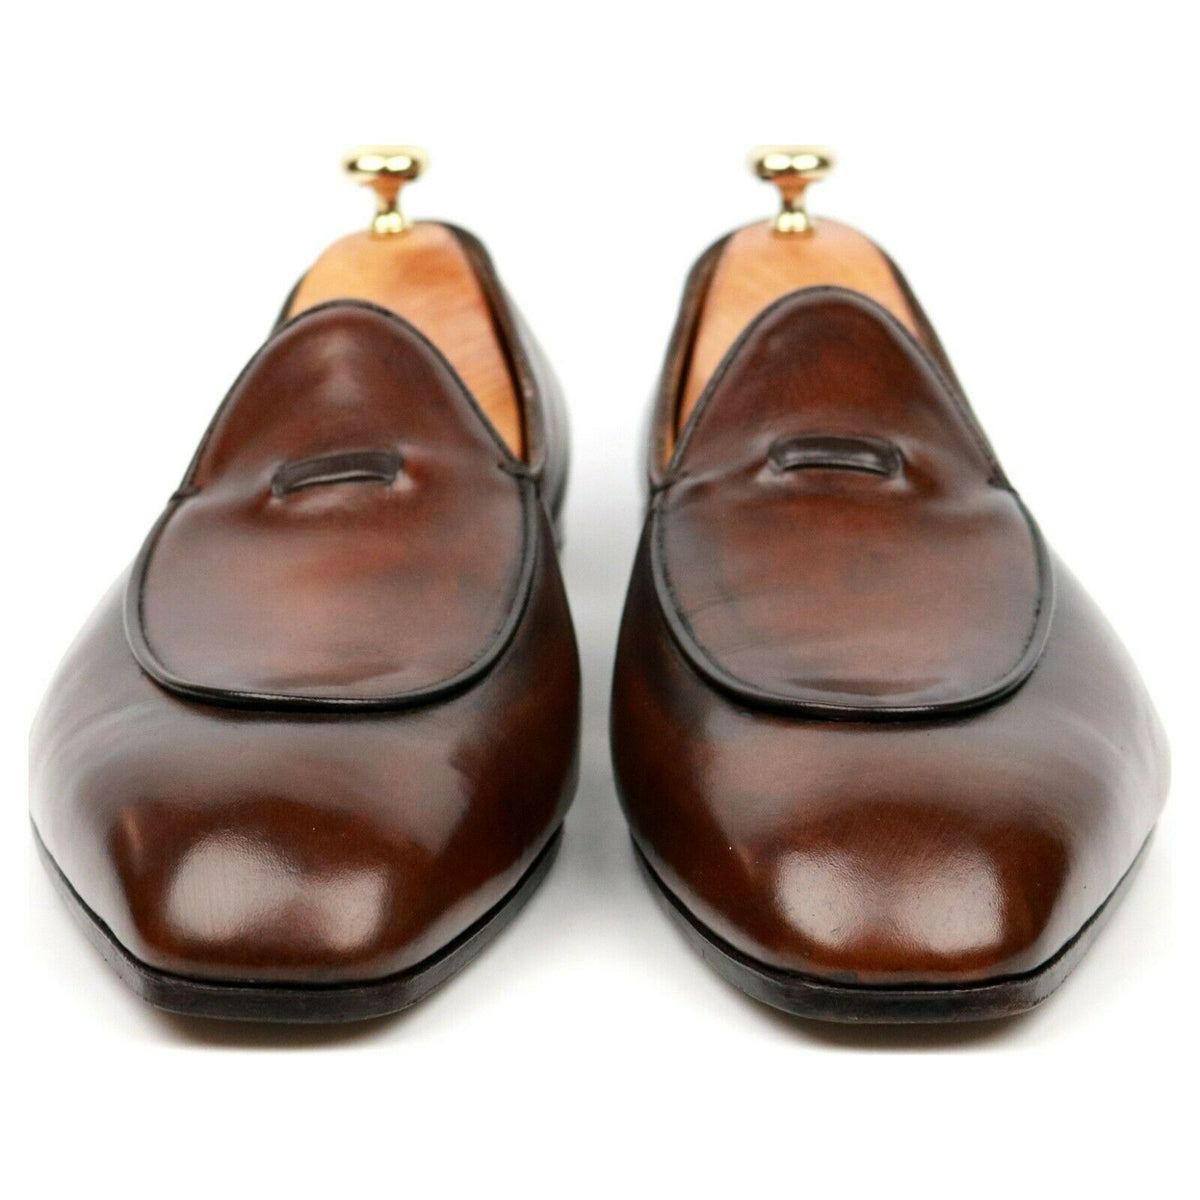 Gaziano & Girling Brown Leather Loafer Slippers UK 9.5 D